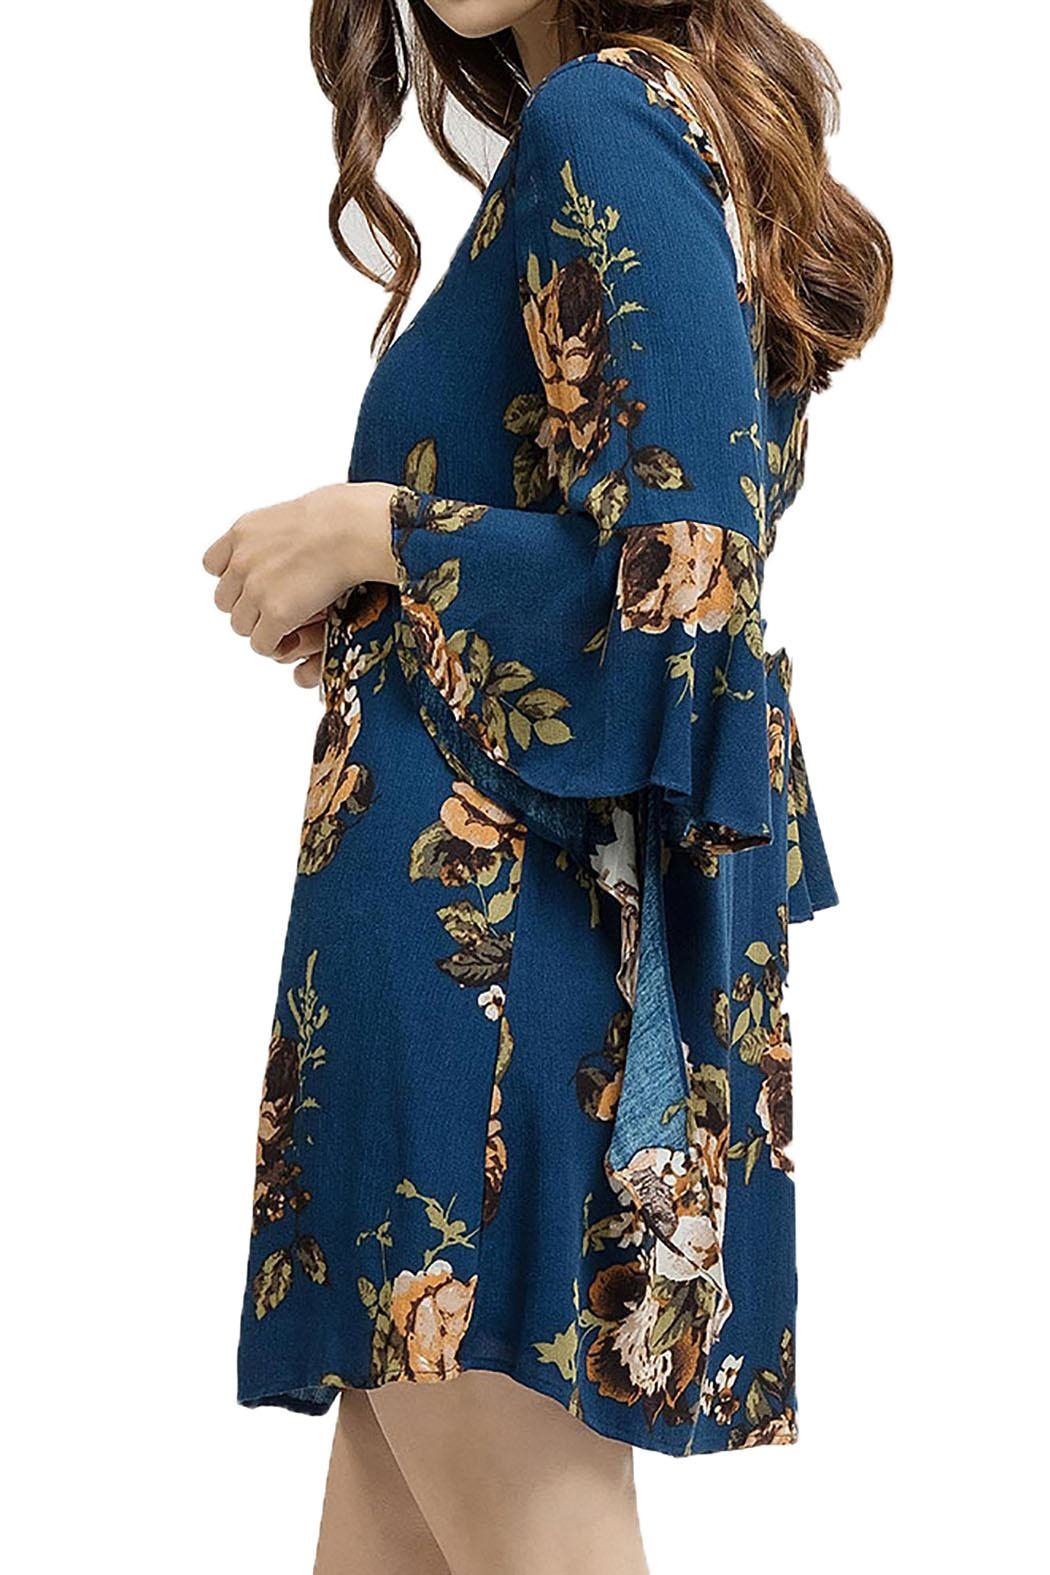 Blu Pepper Woven Floral Dress - Front Full Image